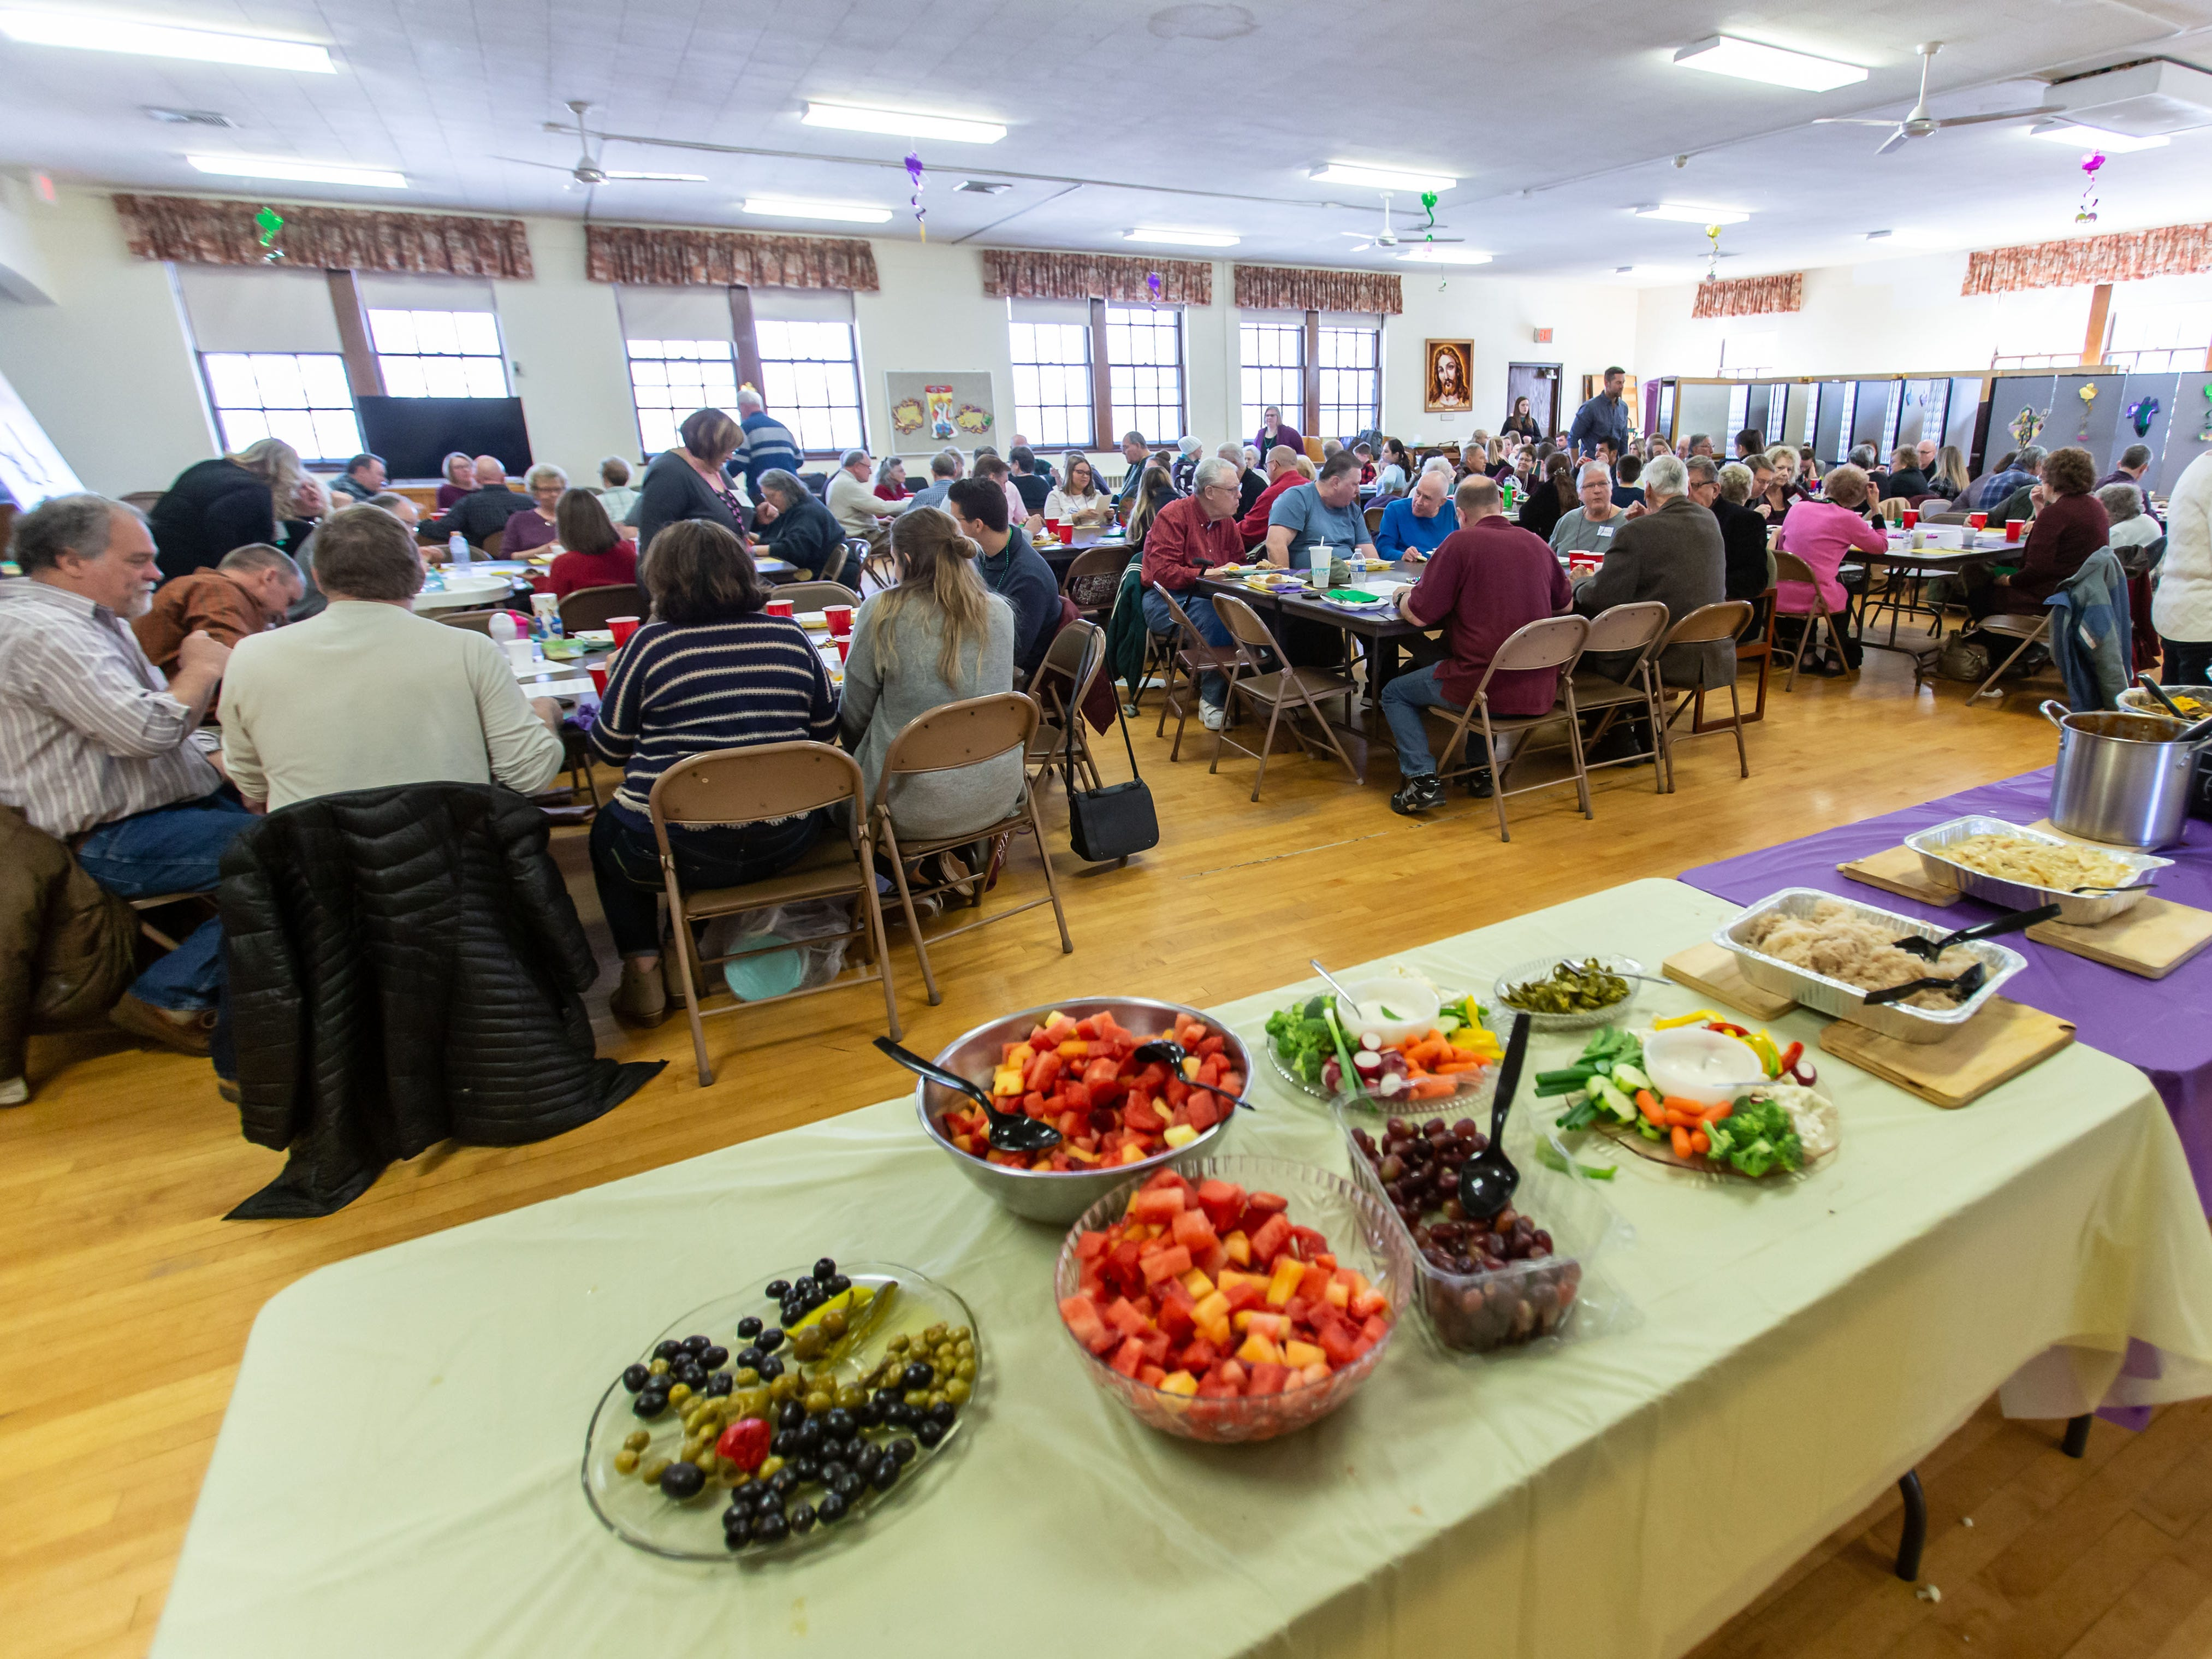 Parishioners and guests enjoy a delicious feast during the Mardi Gras Pig Roast and pie auction at Immanuel Lutheran Church in Cedarburg on Sunday, March 3, 2019. The event is a fundraiser for the church.